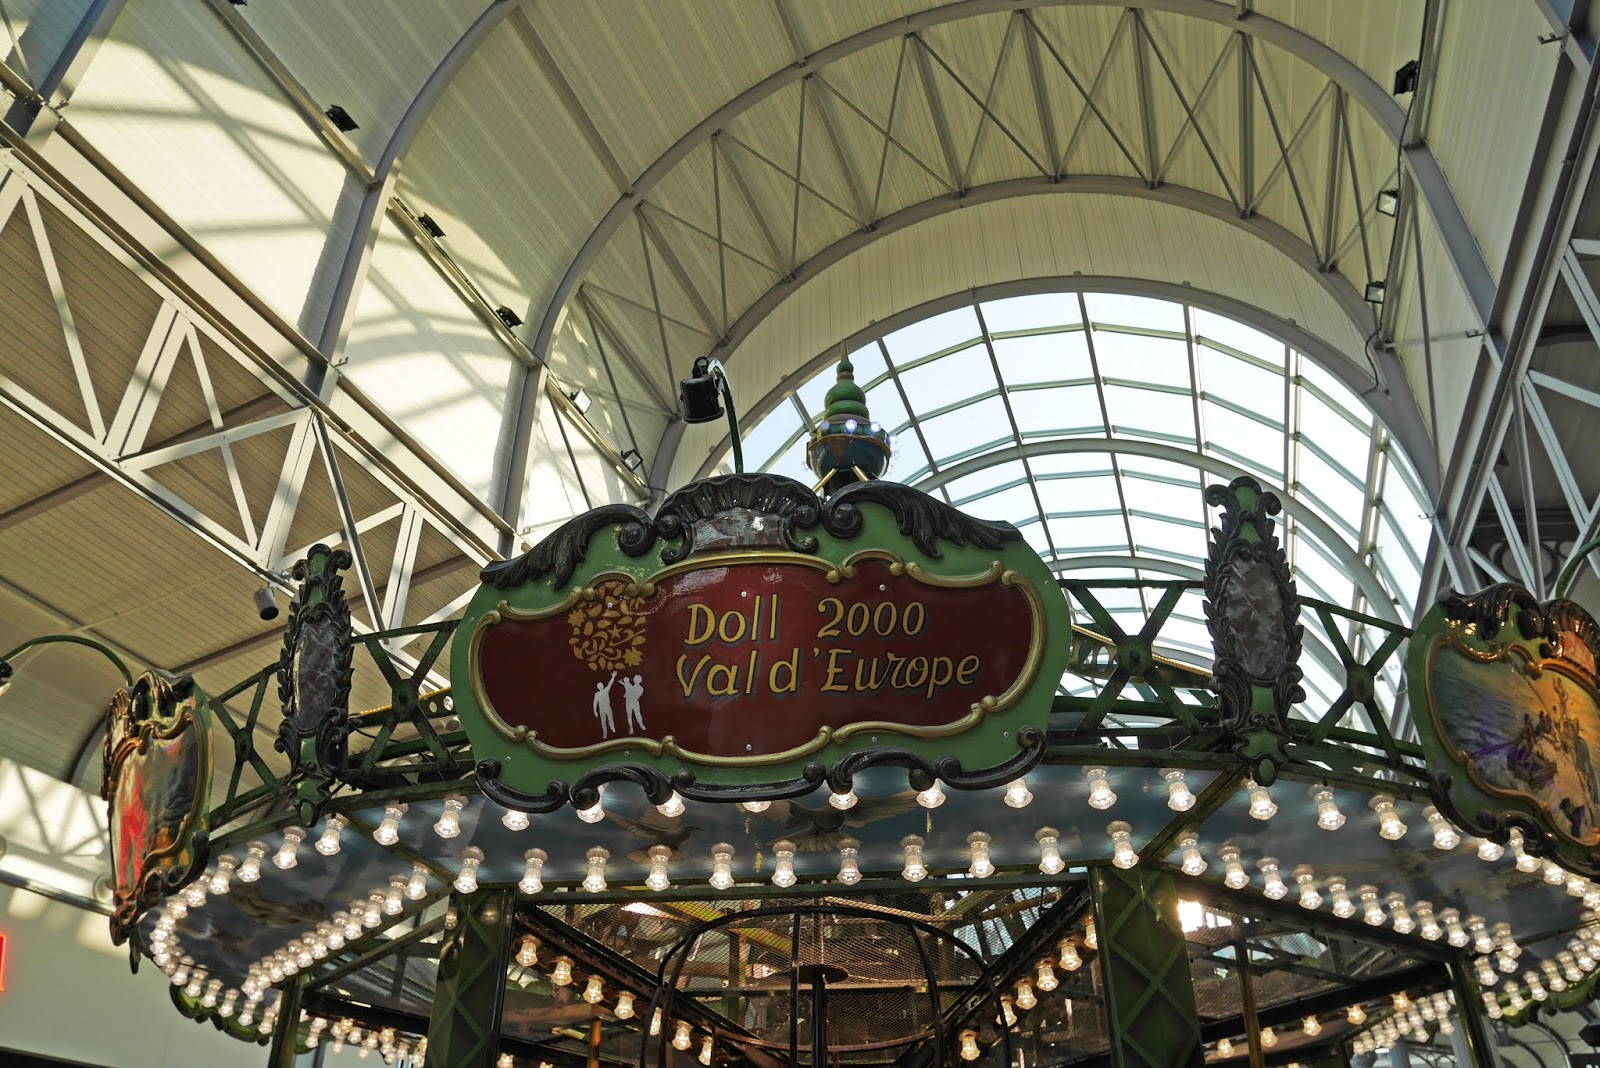 Val d'Europe shopping centre, Disneyland Paris